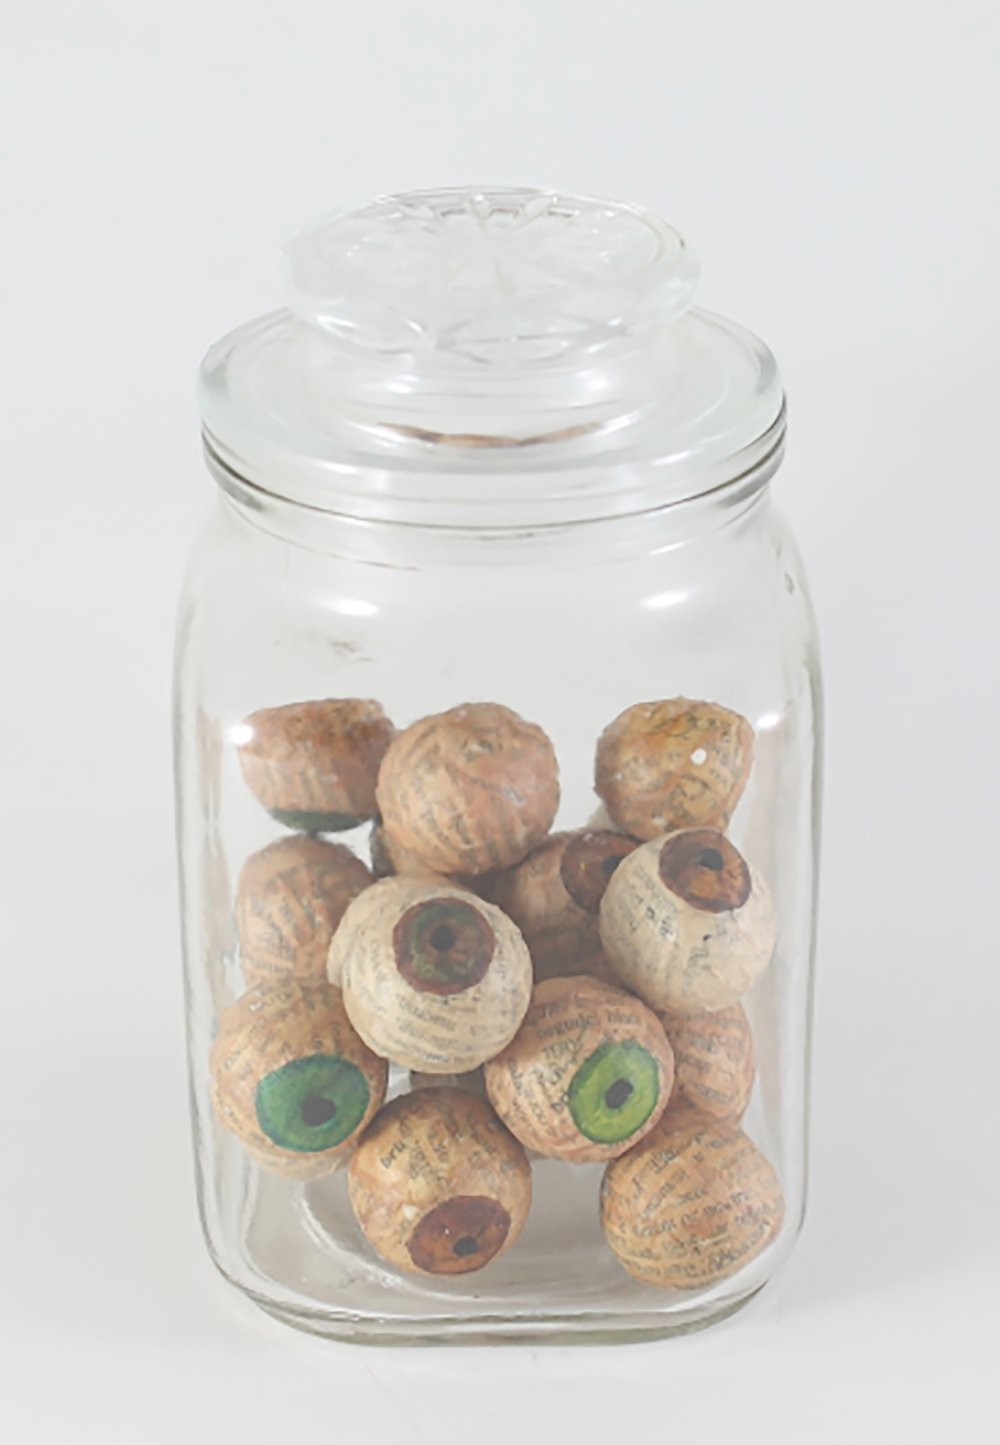 Collected Eyes - Small  Papier maché and glass jar  6 x 3.5 x 3.5 inches  2015